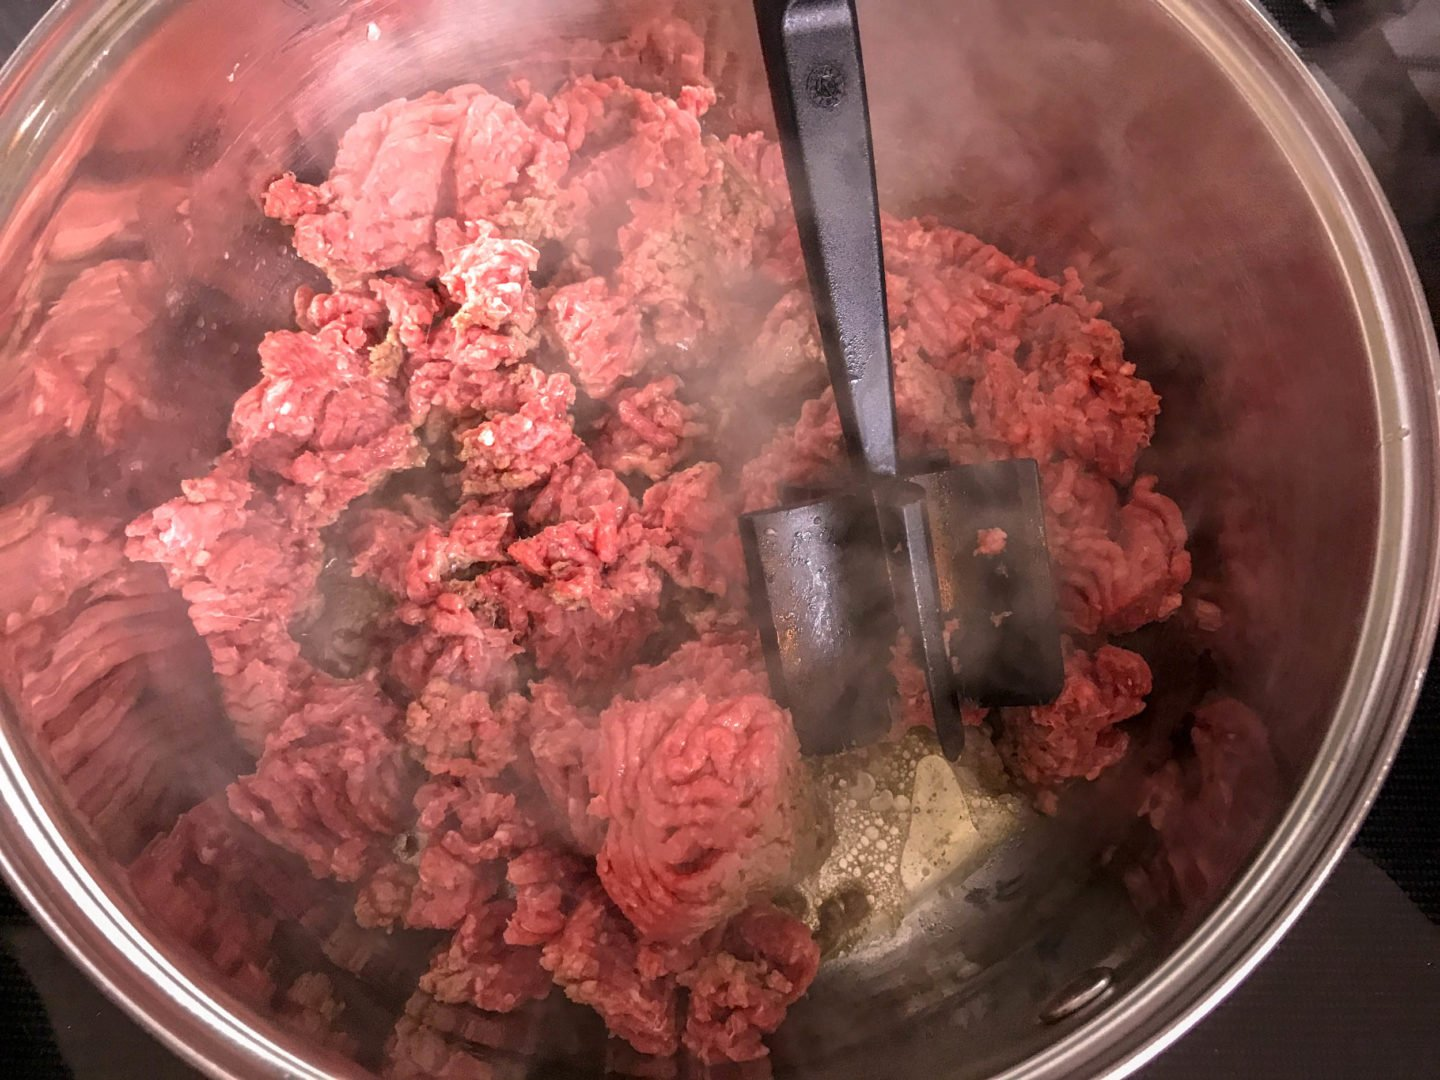 ground beef browning in a pan